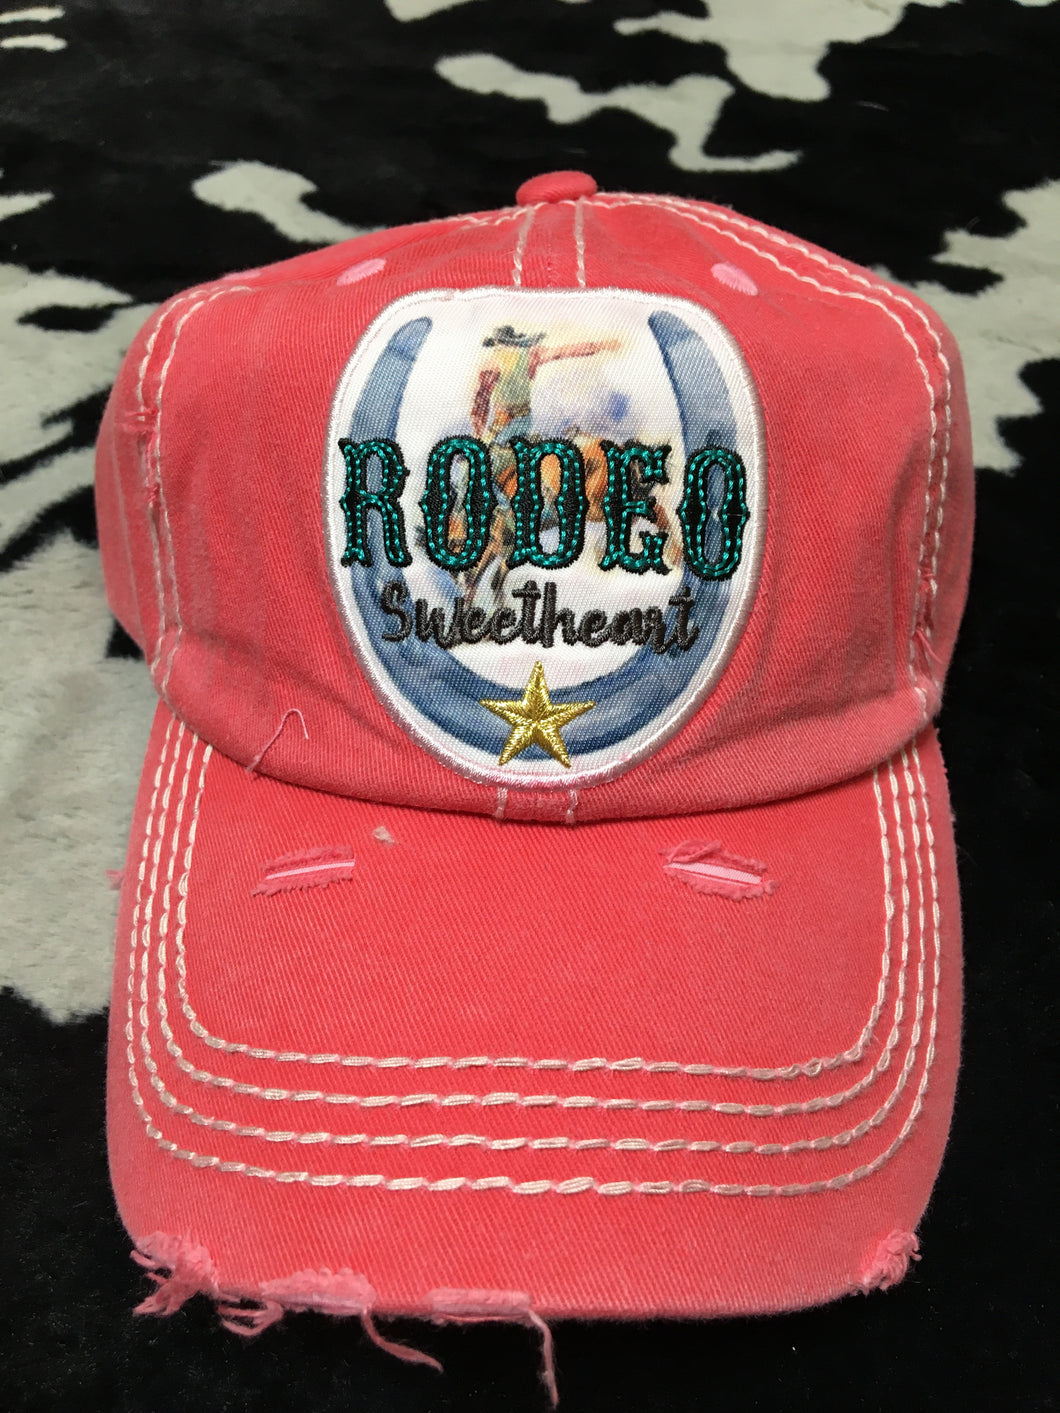 Rodeo Sweetheart cap